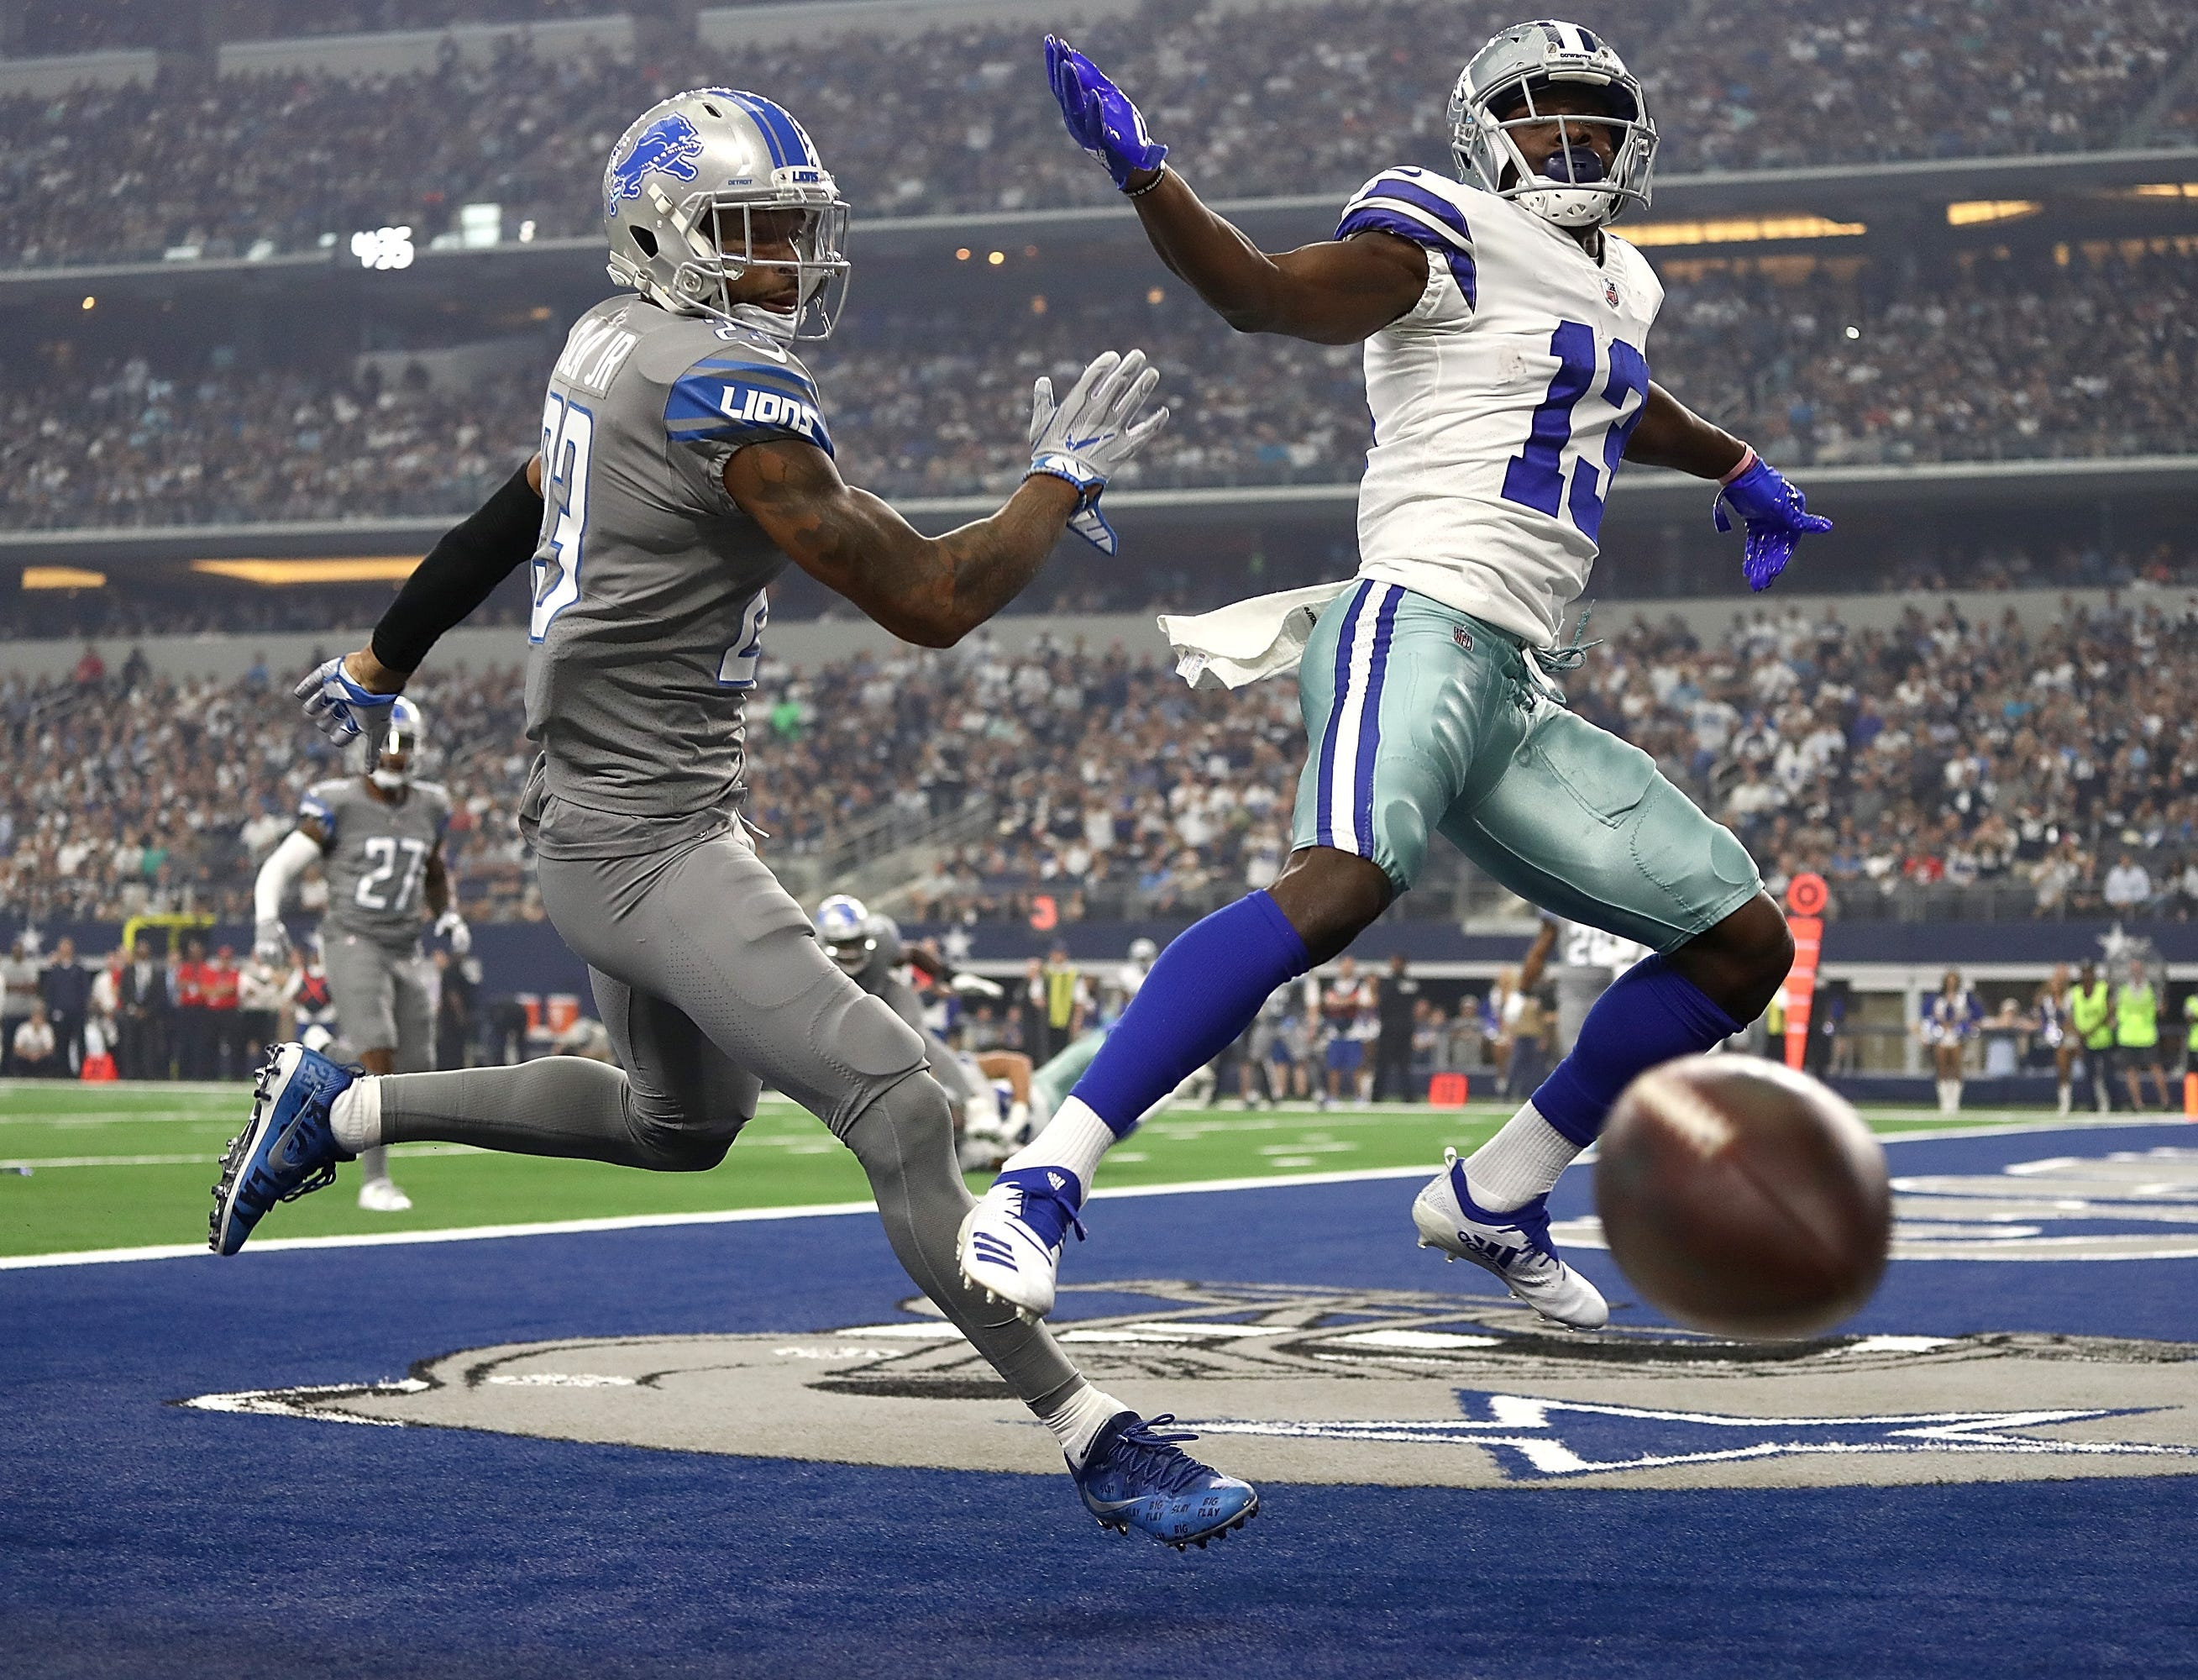 Cowboys receiver Michael Gallup goes up for a pass against Lions cornerback Darius Slay earlier this season.